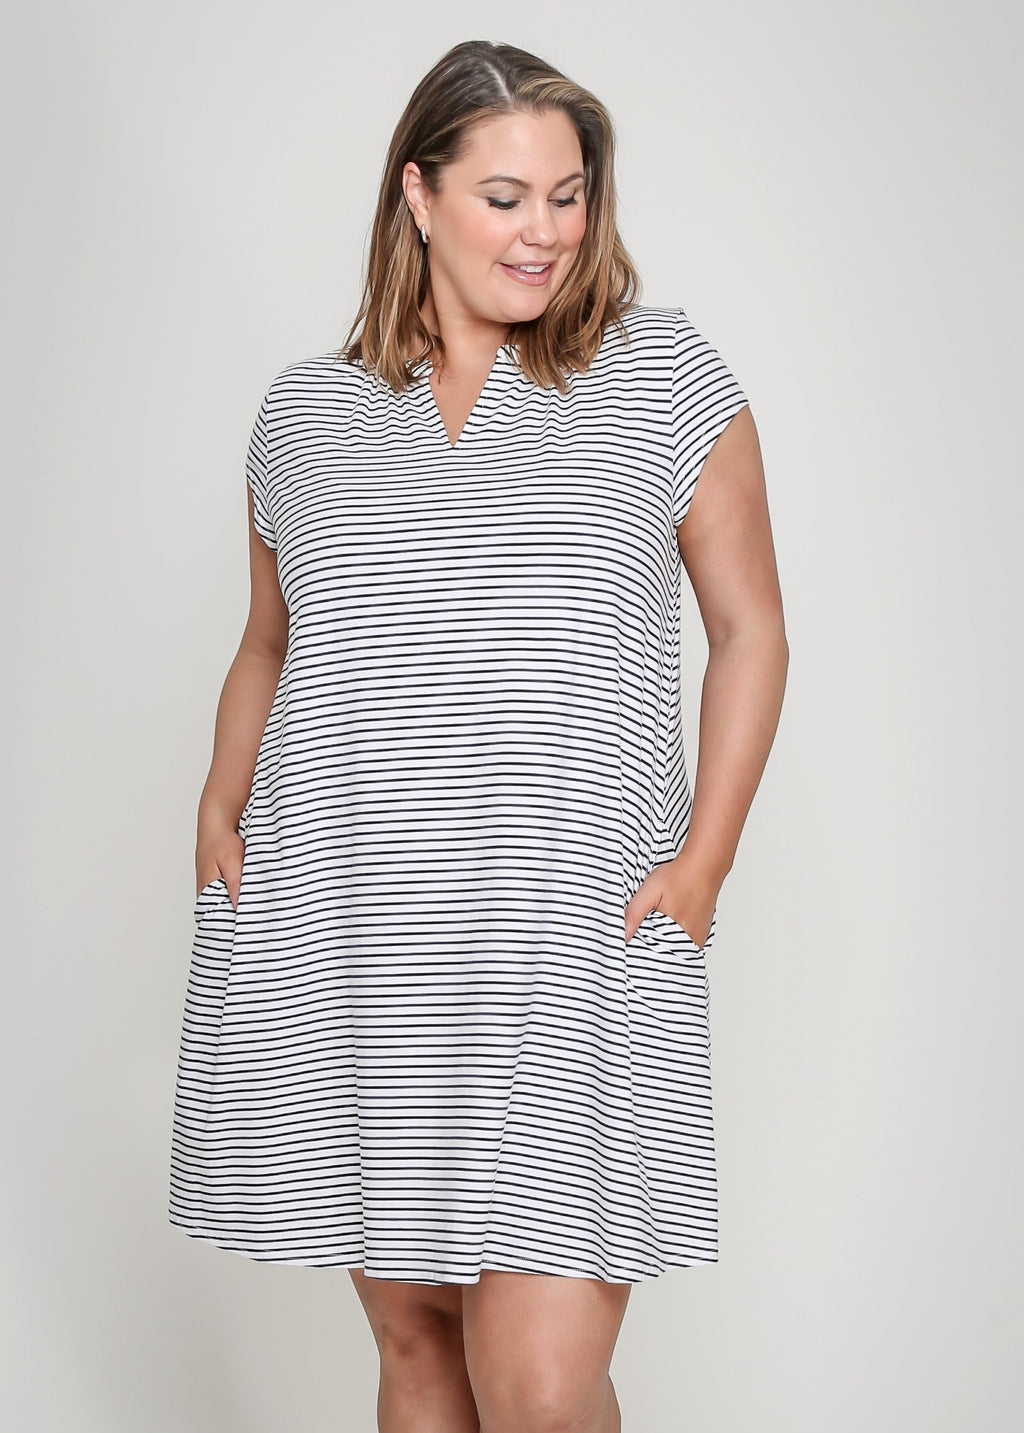 NELA DRESS - WHITE STRIPE